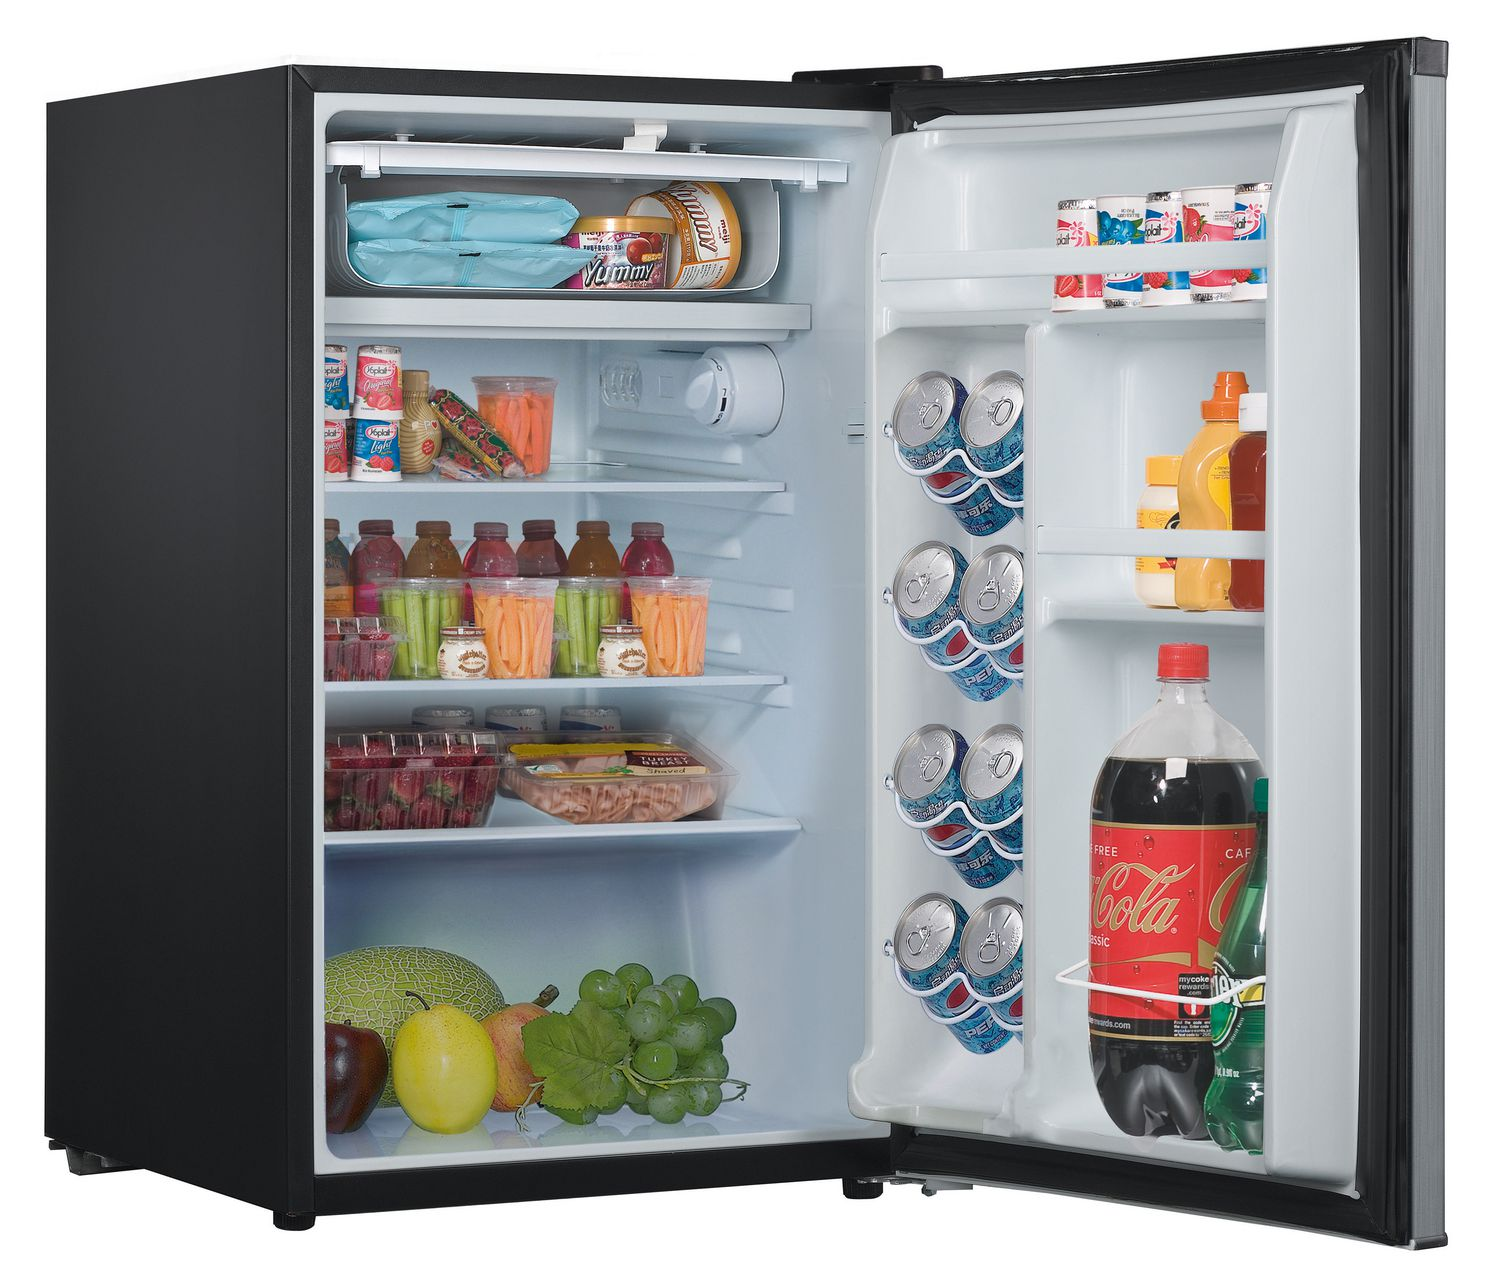 Whirlpool Energy Star 4 3 Cu Ft Compact Refrigerator